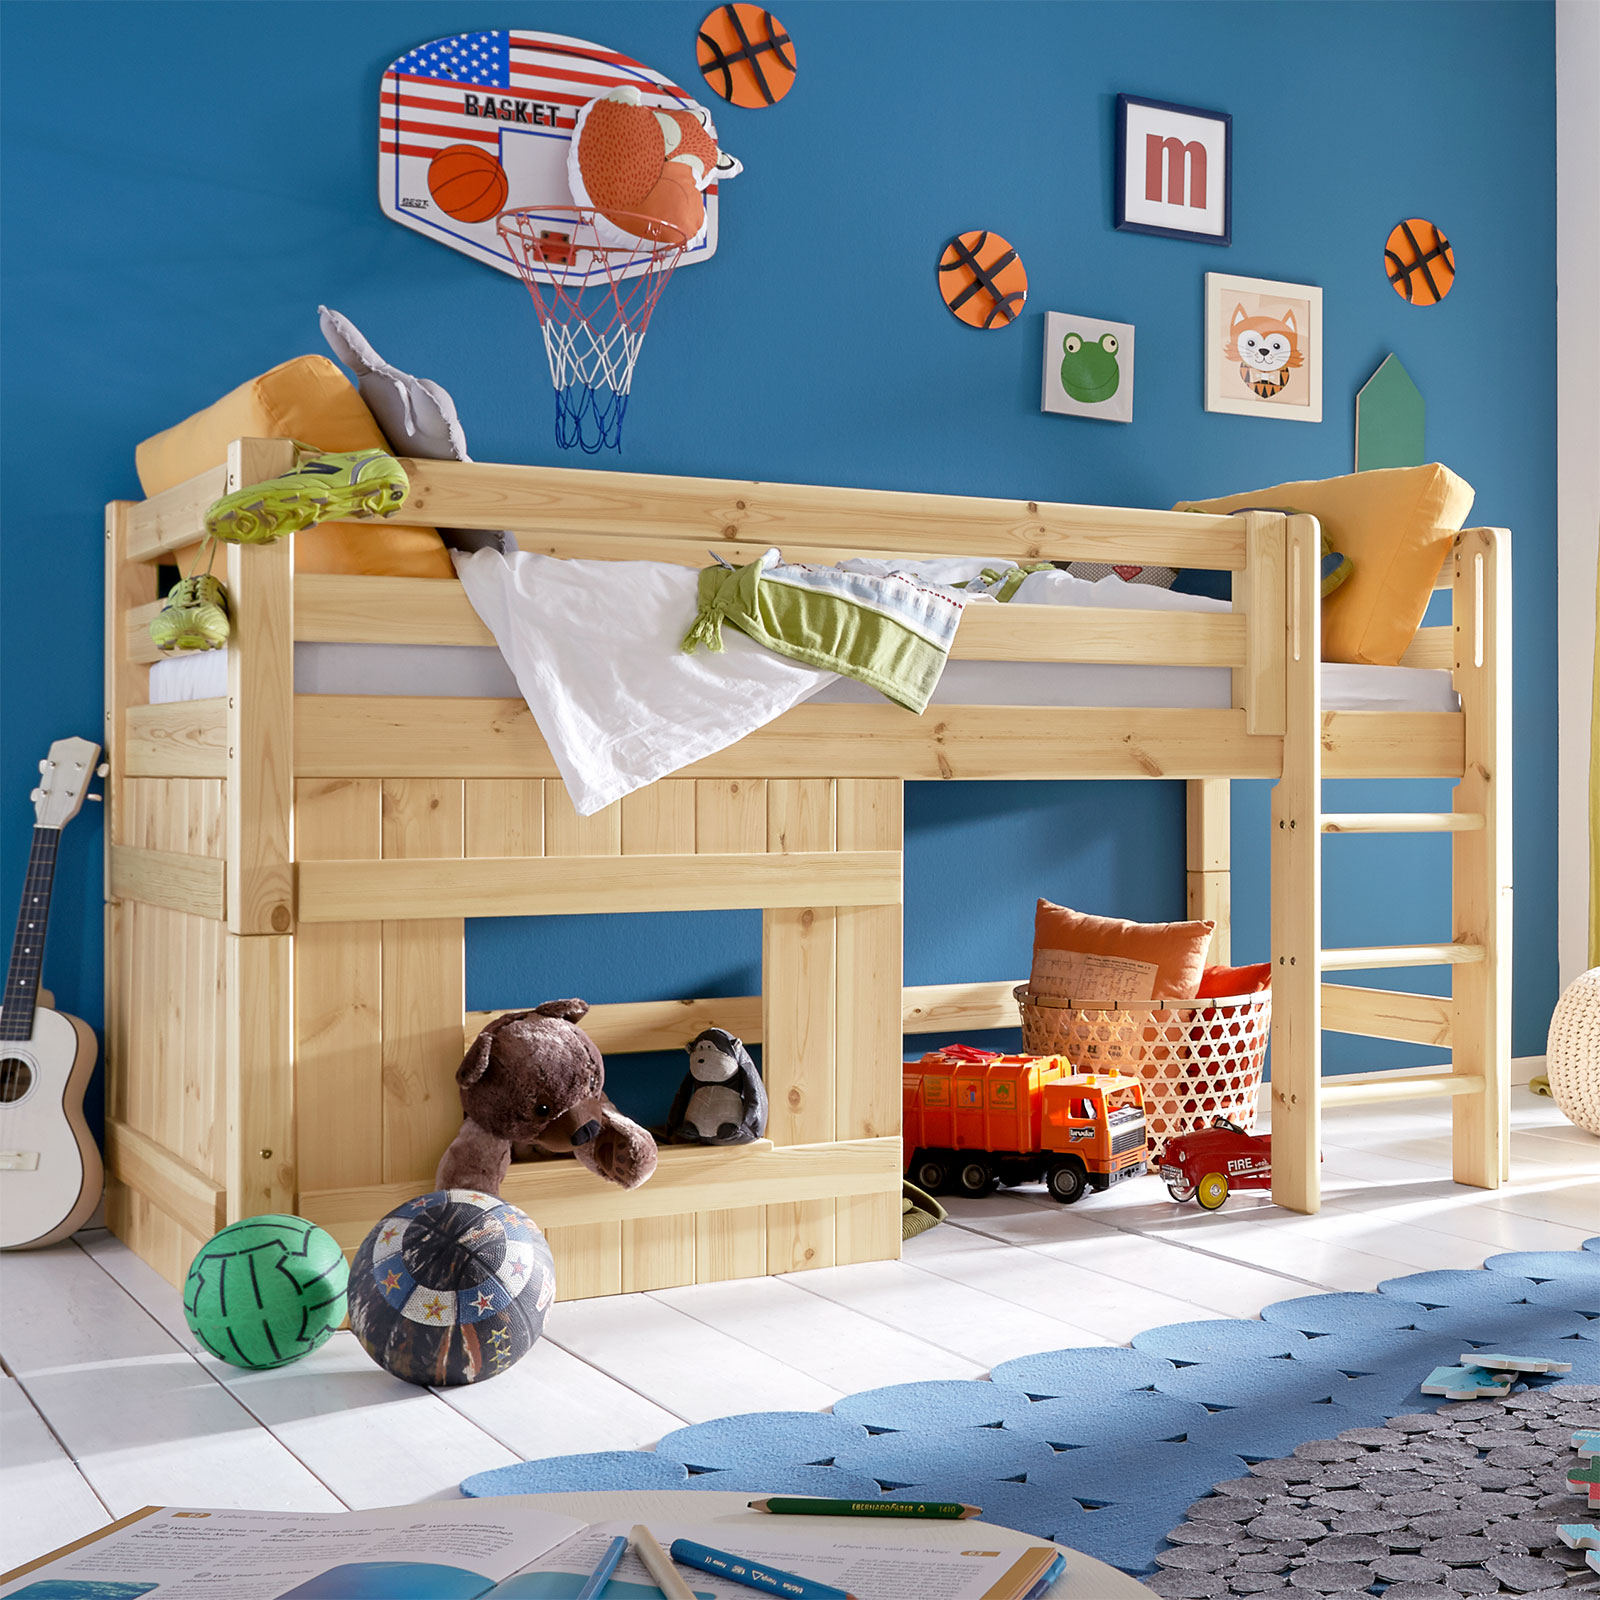 paw patrol kleinkinderbett mit stauraum smash. Black Bedroom Furniture Sets. Home Design Ideas